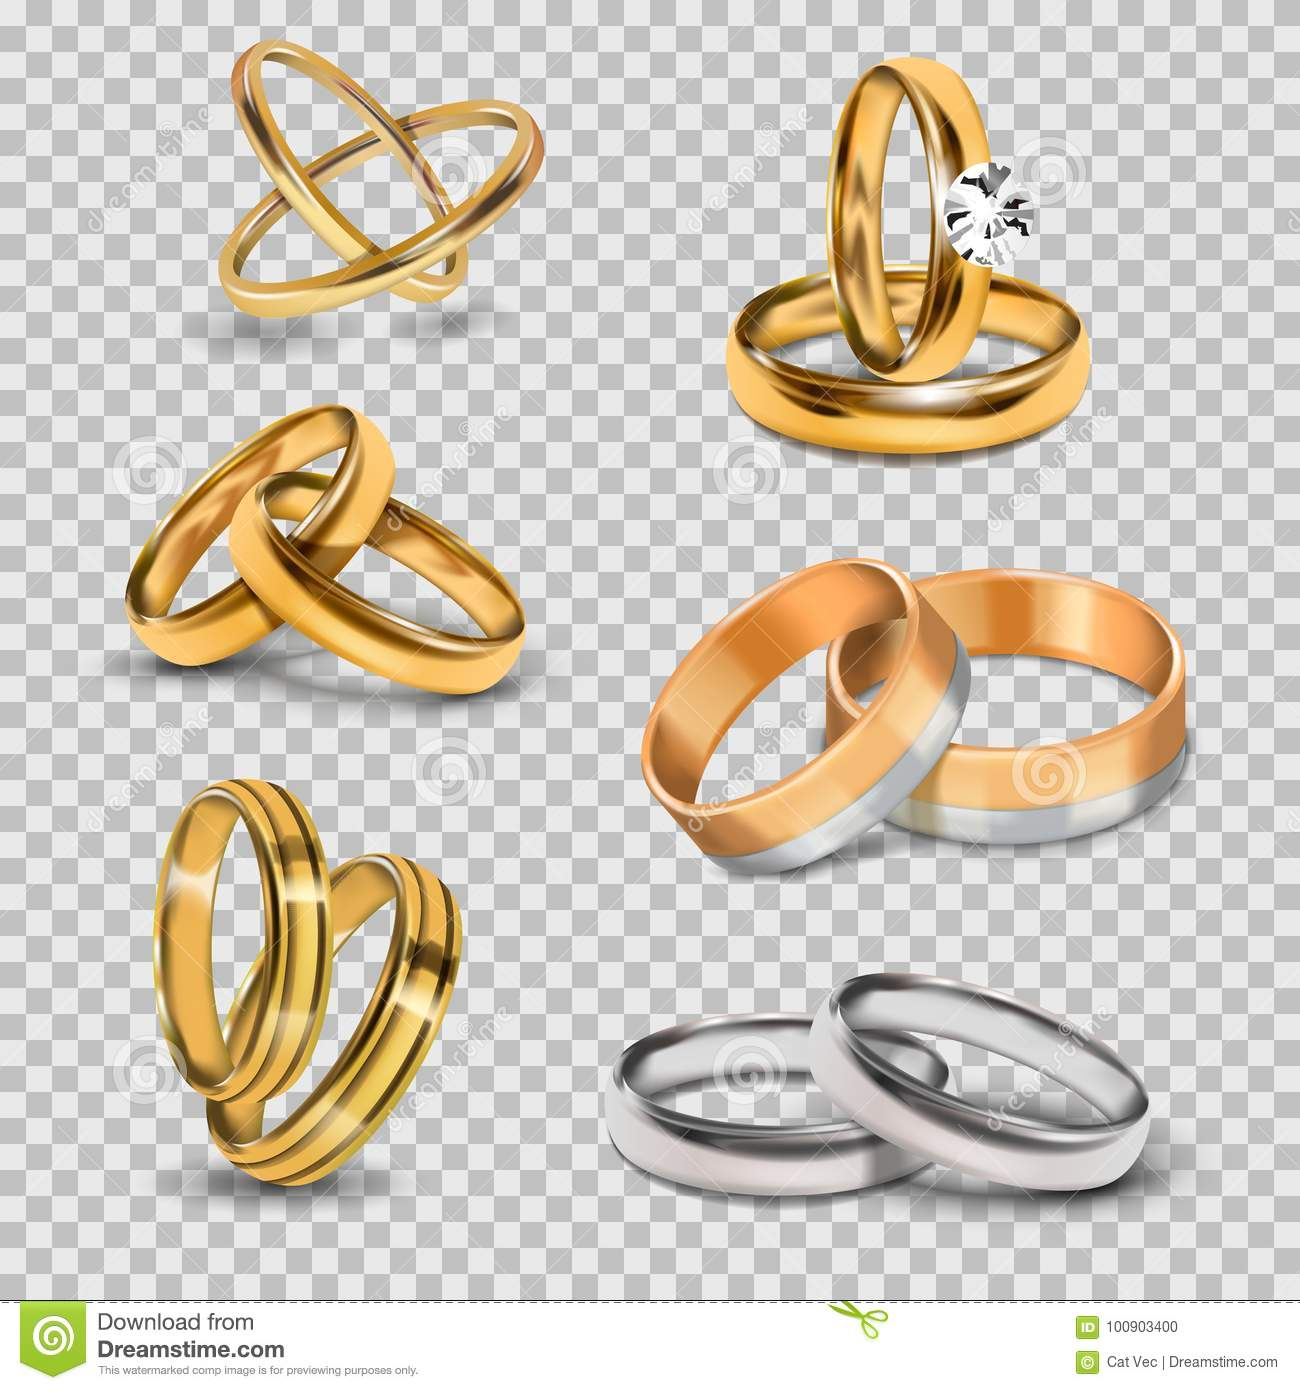 4bfc127a88 Wedding realistic 3d couples rings gold and silver metal romantic jewelry  accessory isolated vector illustration.